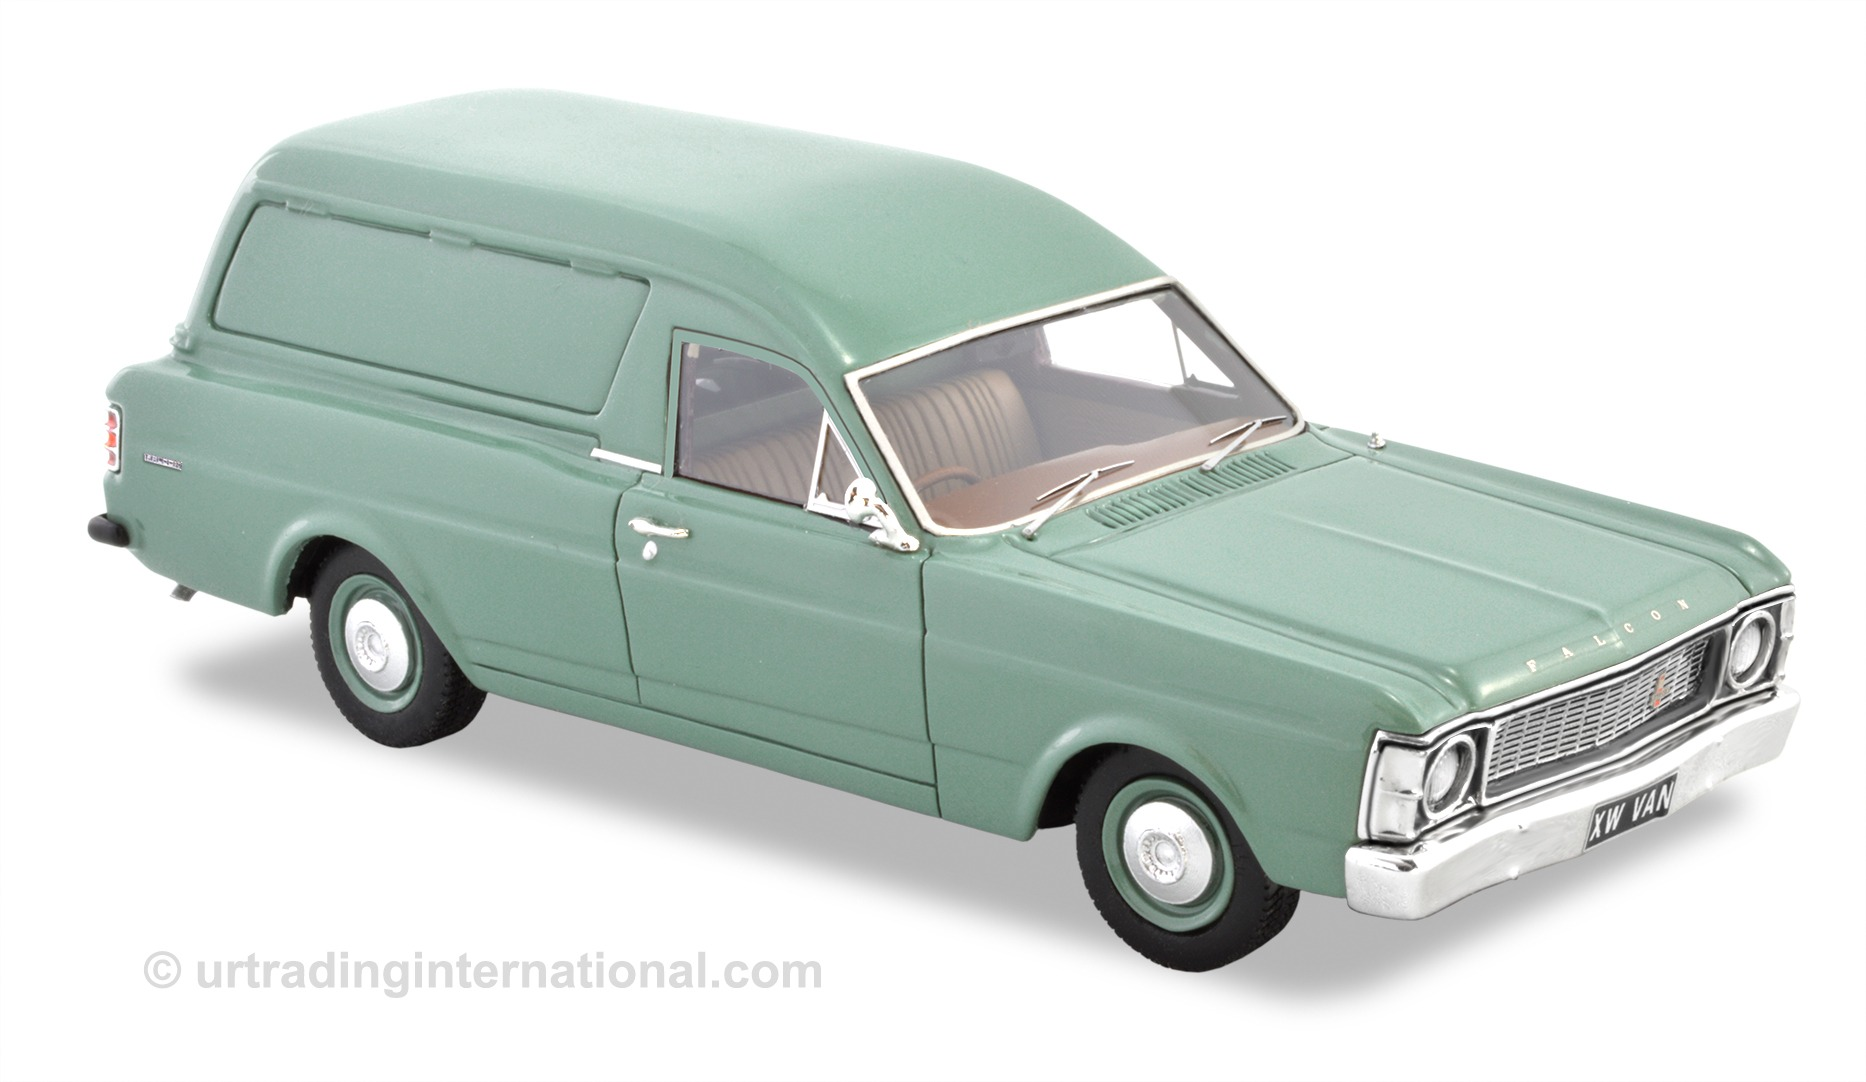 1970 XW Falcon Panel Van – Leaf Green